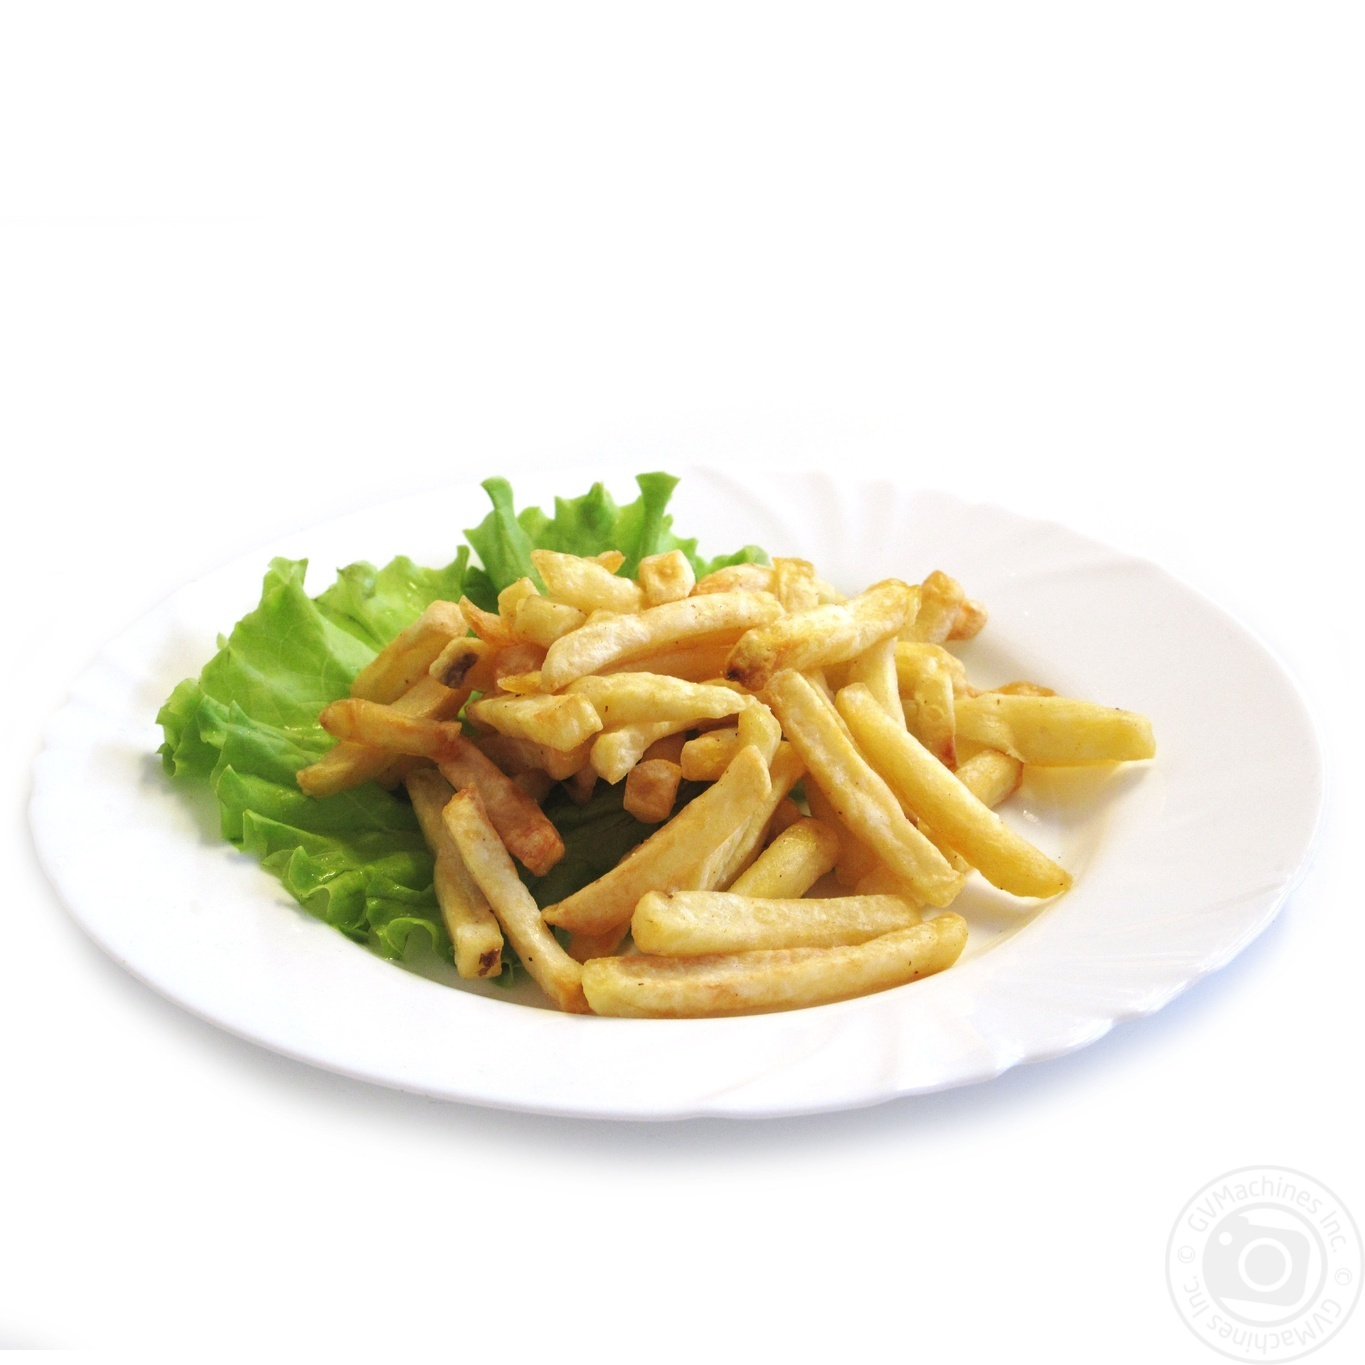 Auchan French Fries → Ready meals → Second courses